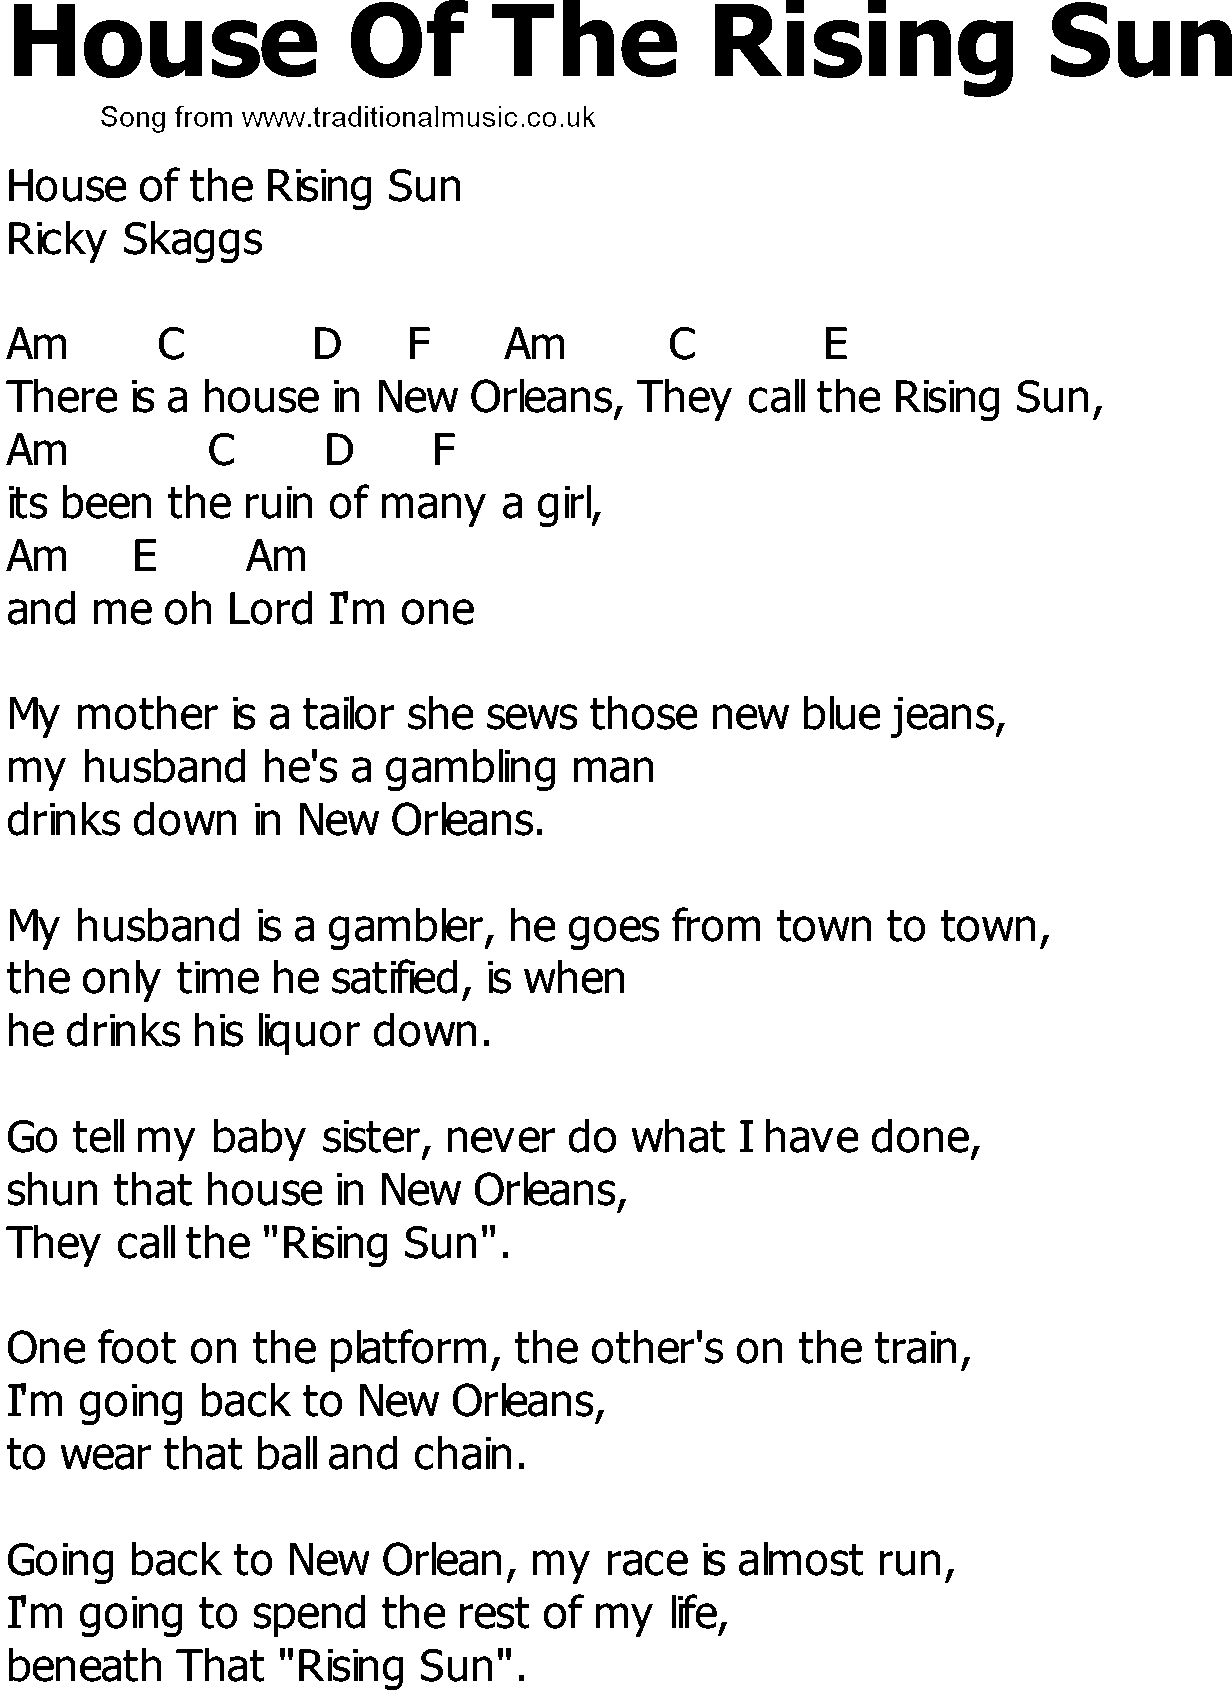 Old Country song lyrics with chords - House Of The Rising Sun